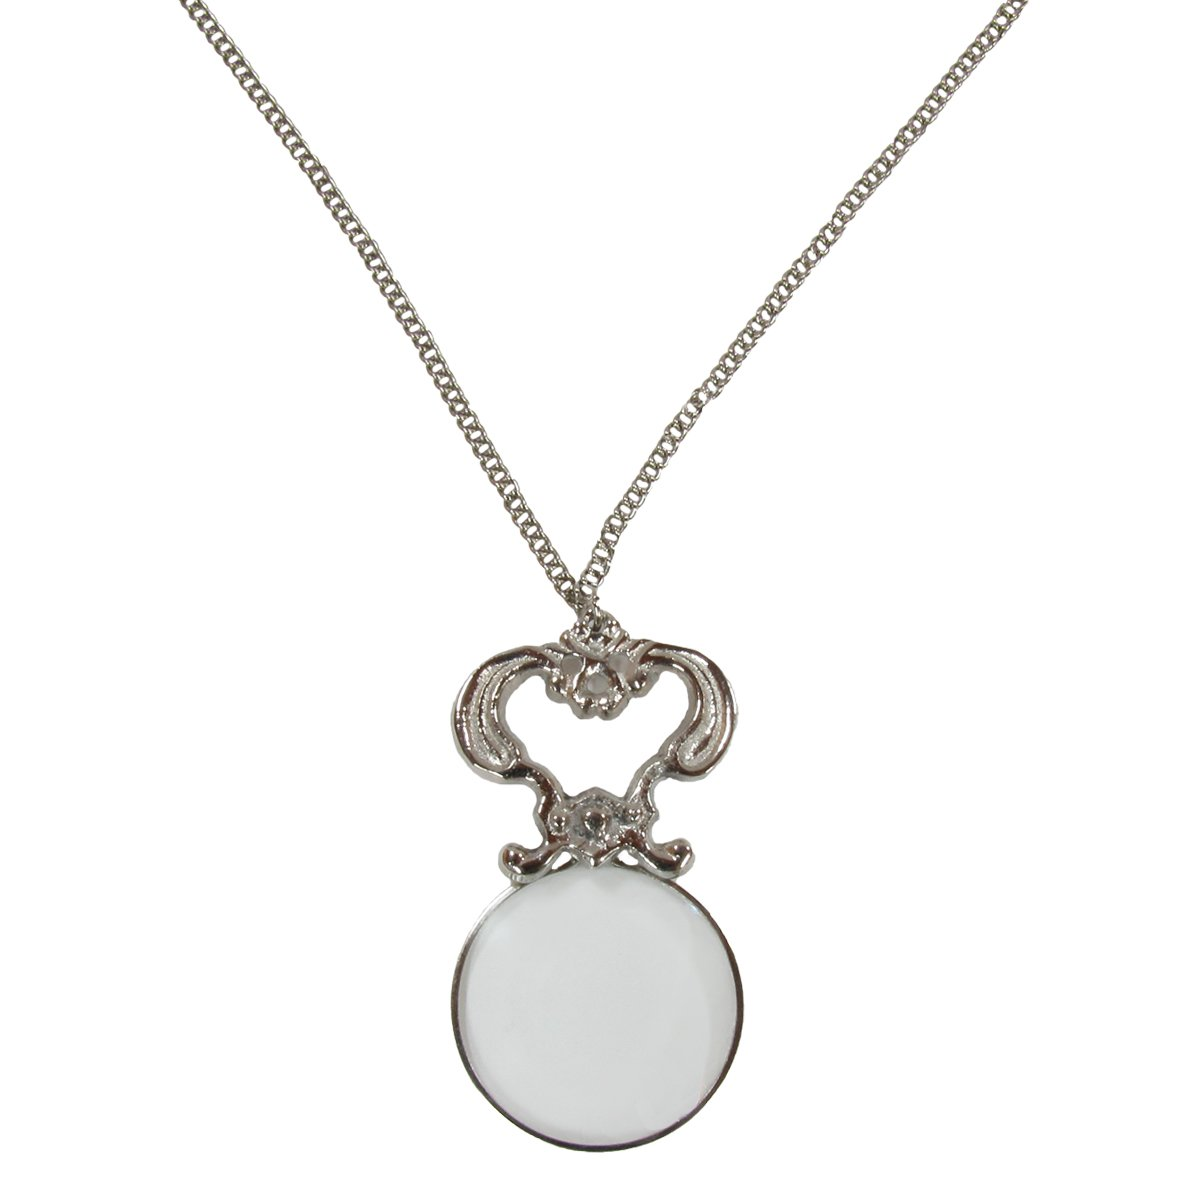 30'' Silver Pendant Necklace Magnifier Glass Magnifying Lens